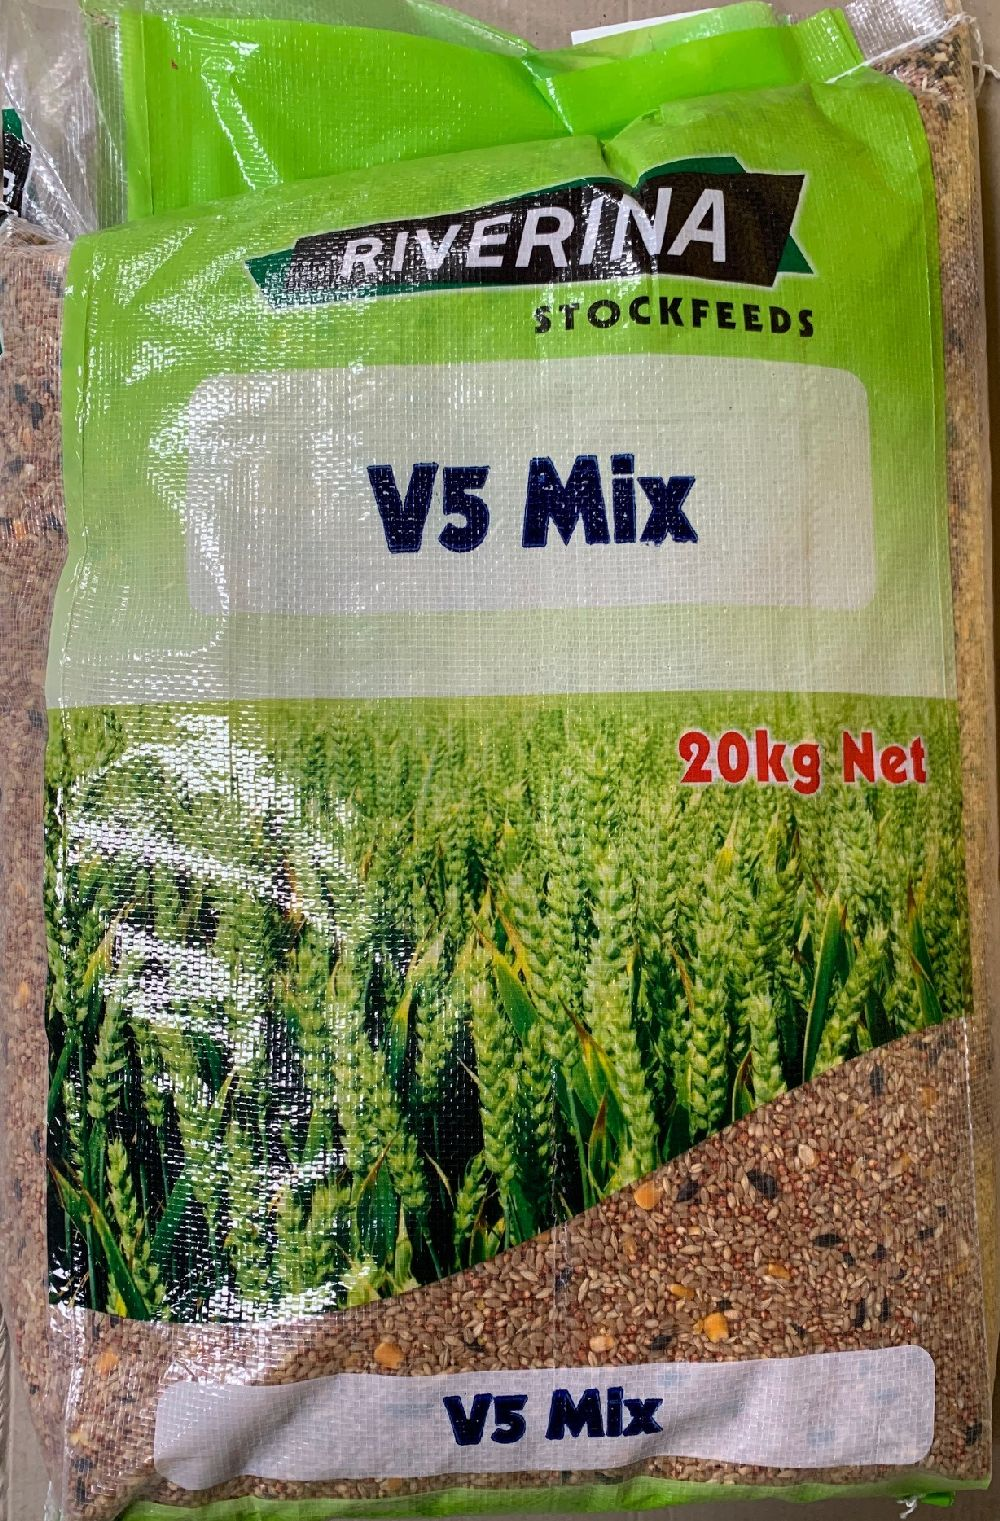 Chicken V5 Grain Mix 20kg